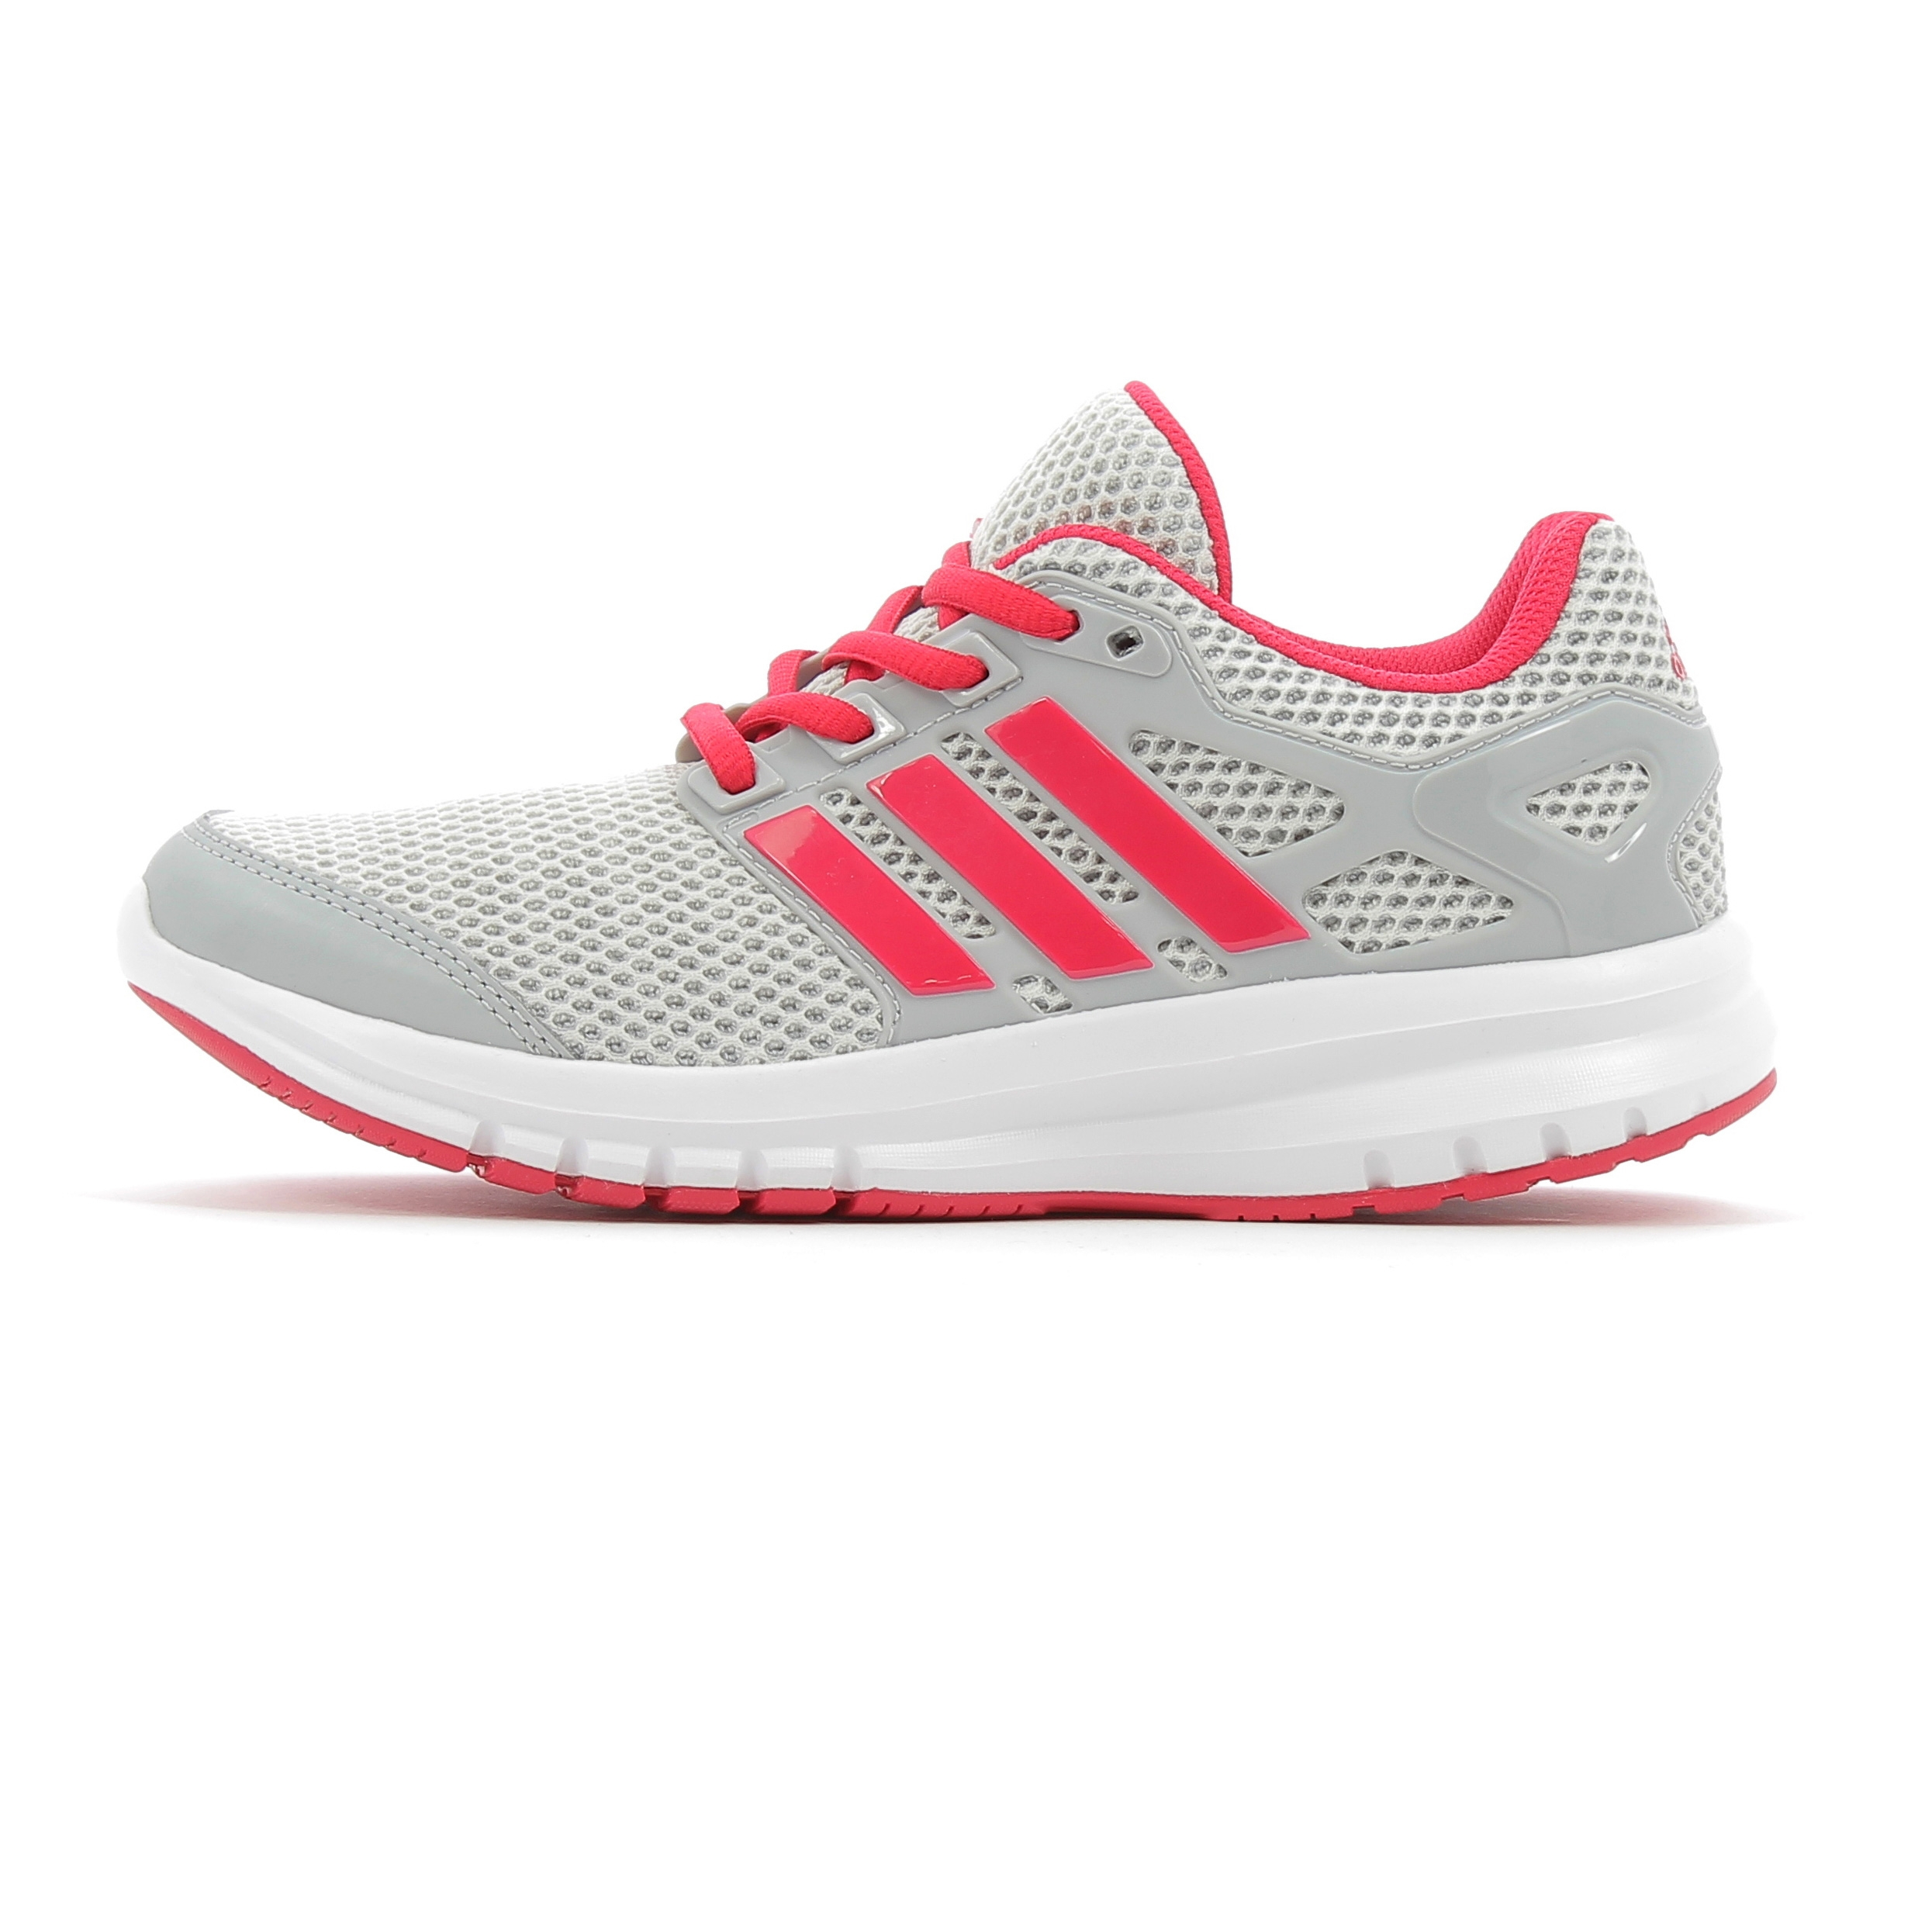 new style dc265 3c607 Chaussures Enfant adidas running Energy Cloud K Gris